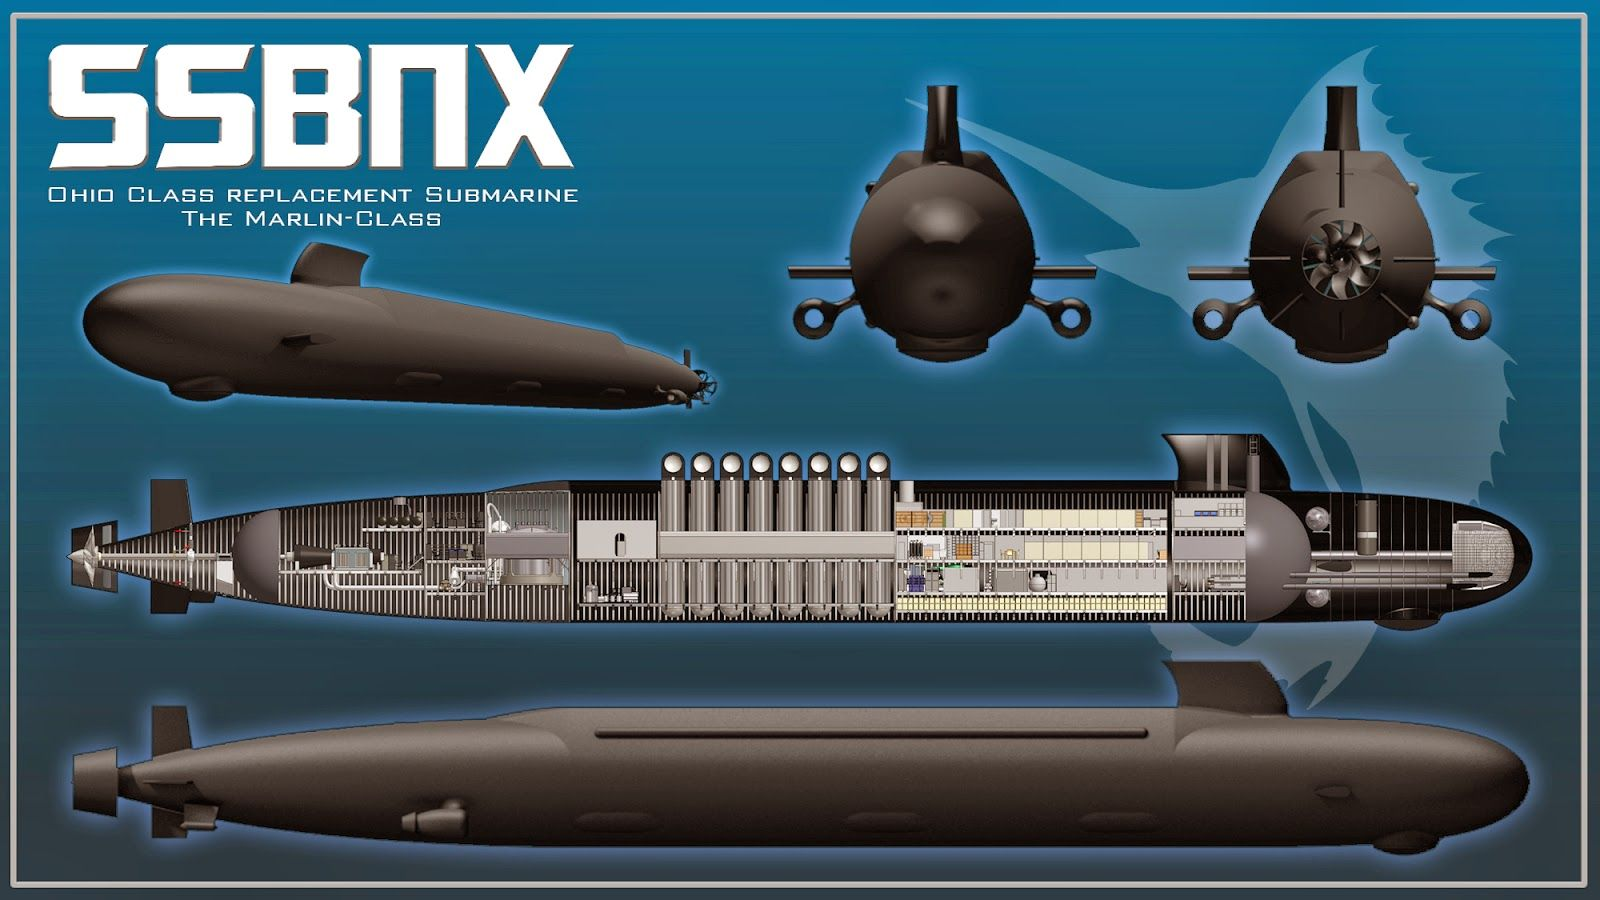 next big future: us funds ohio replacement submarine and